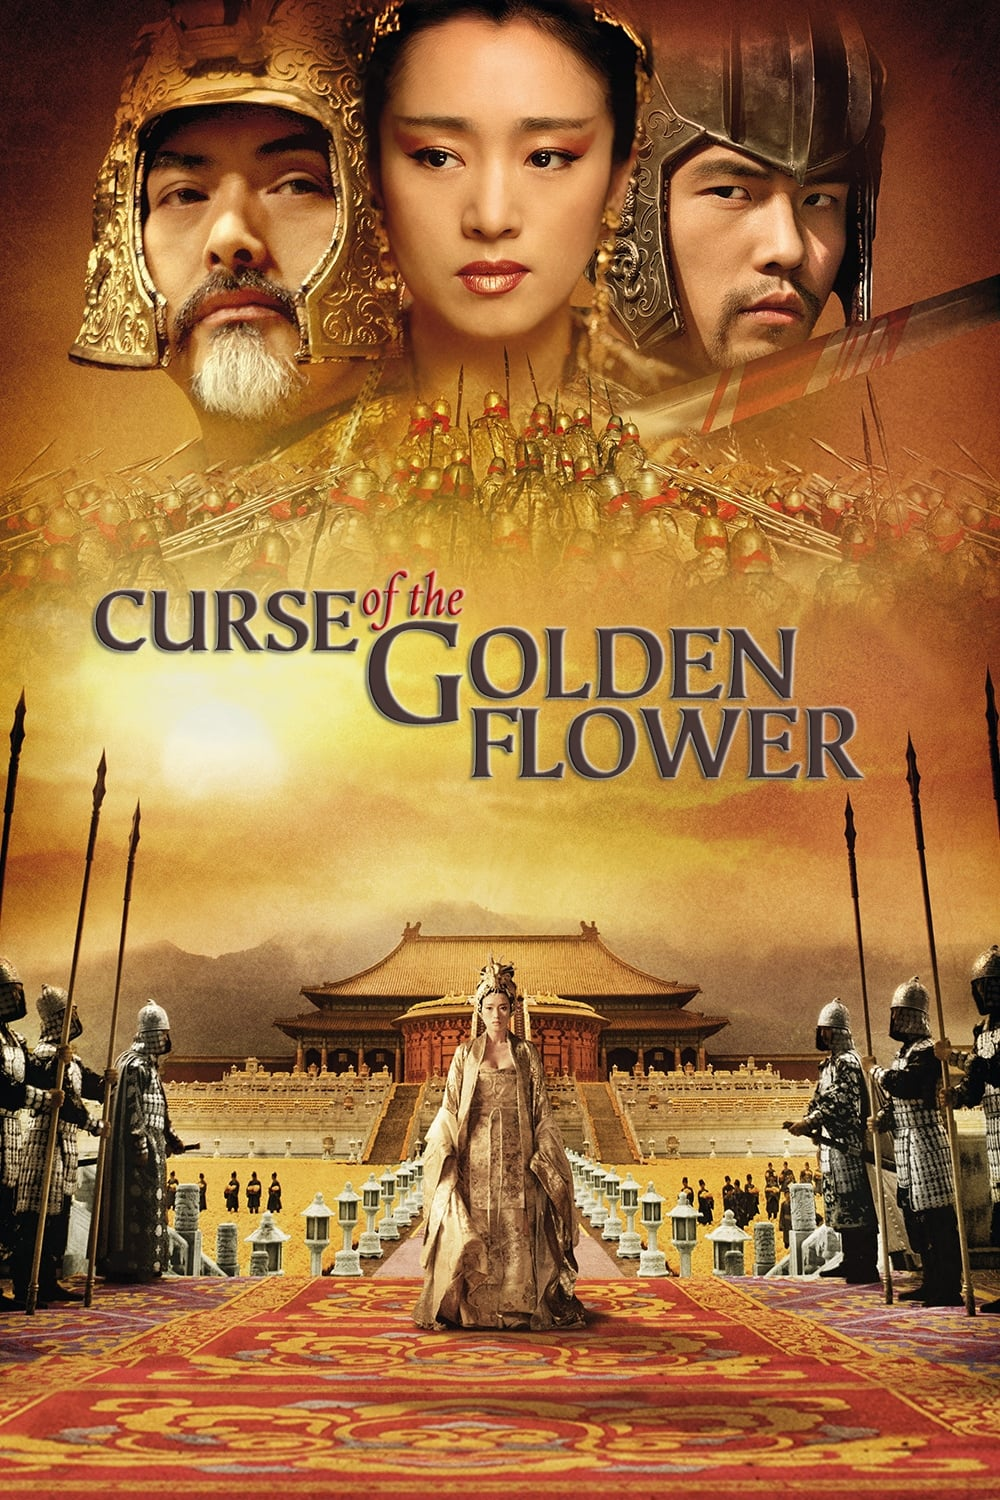 La maldición de la flor dorada (Curse of the Golden Flower)